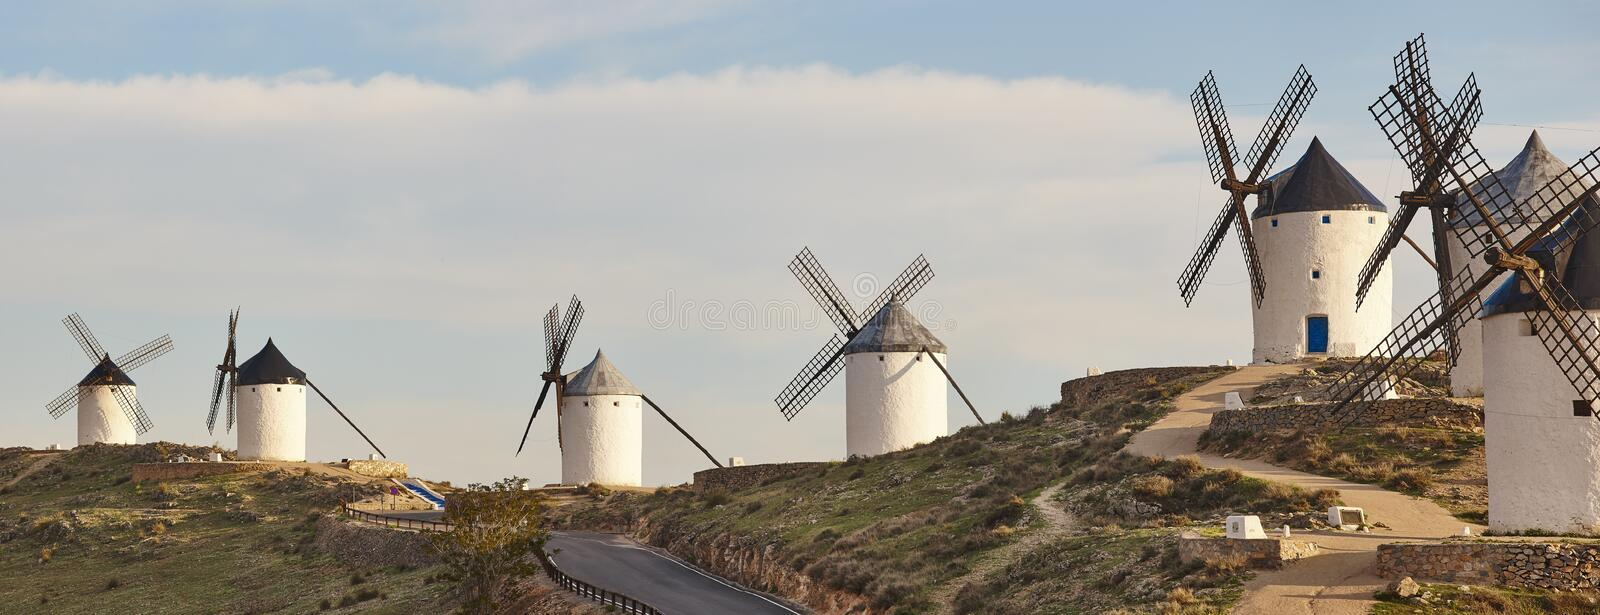 Panoramic view traditional antique windmills in Spain. Consuegra, Toledo. Travel stock photography